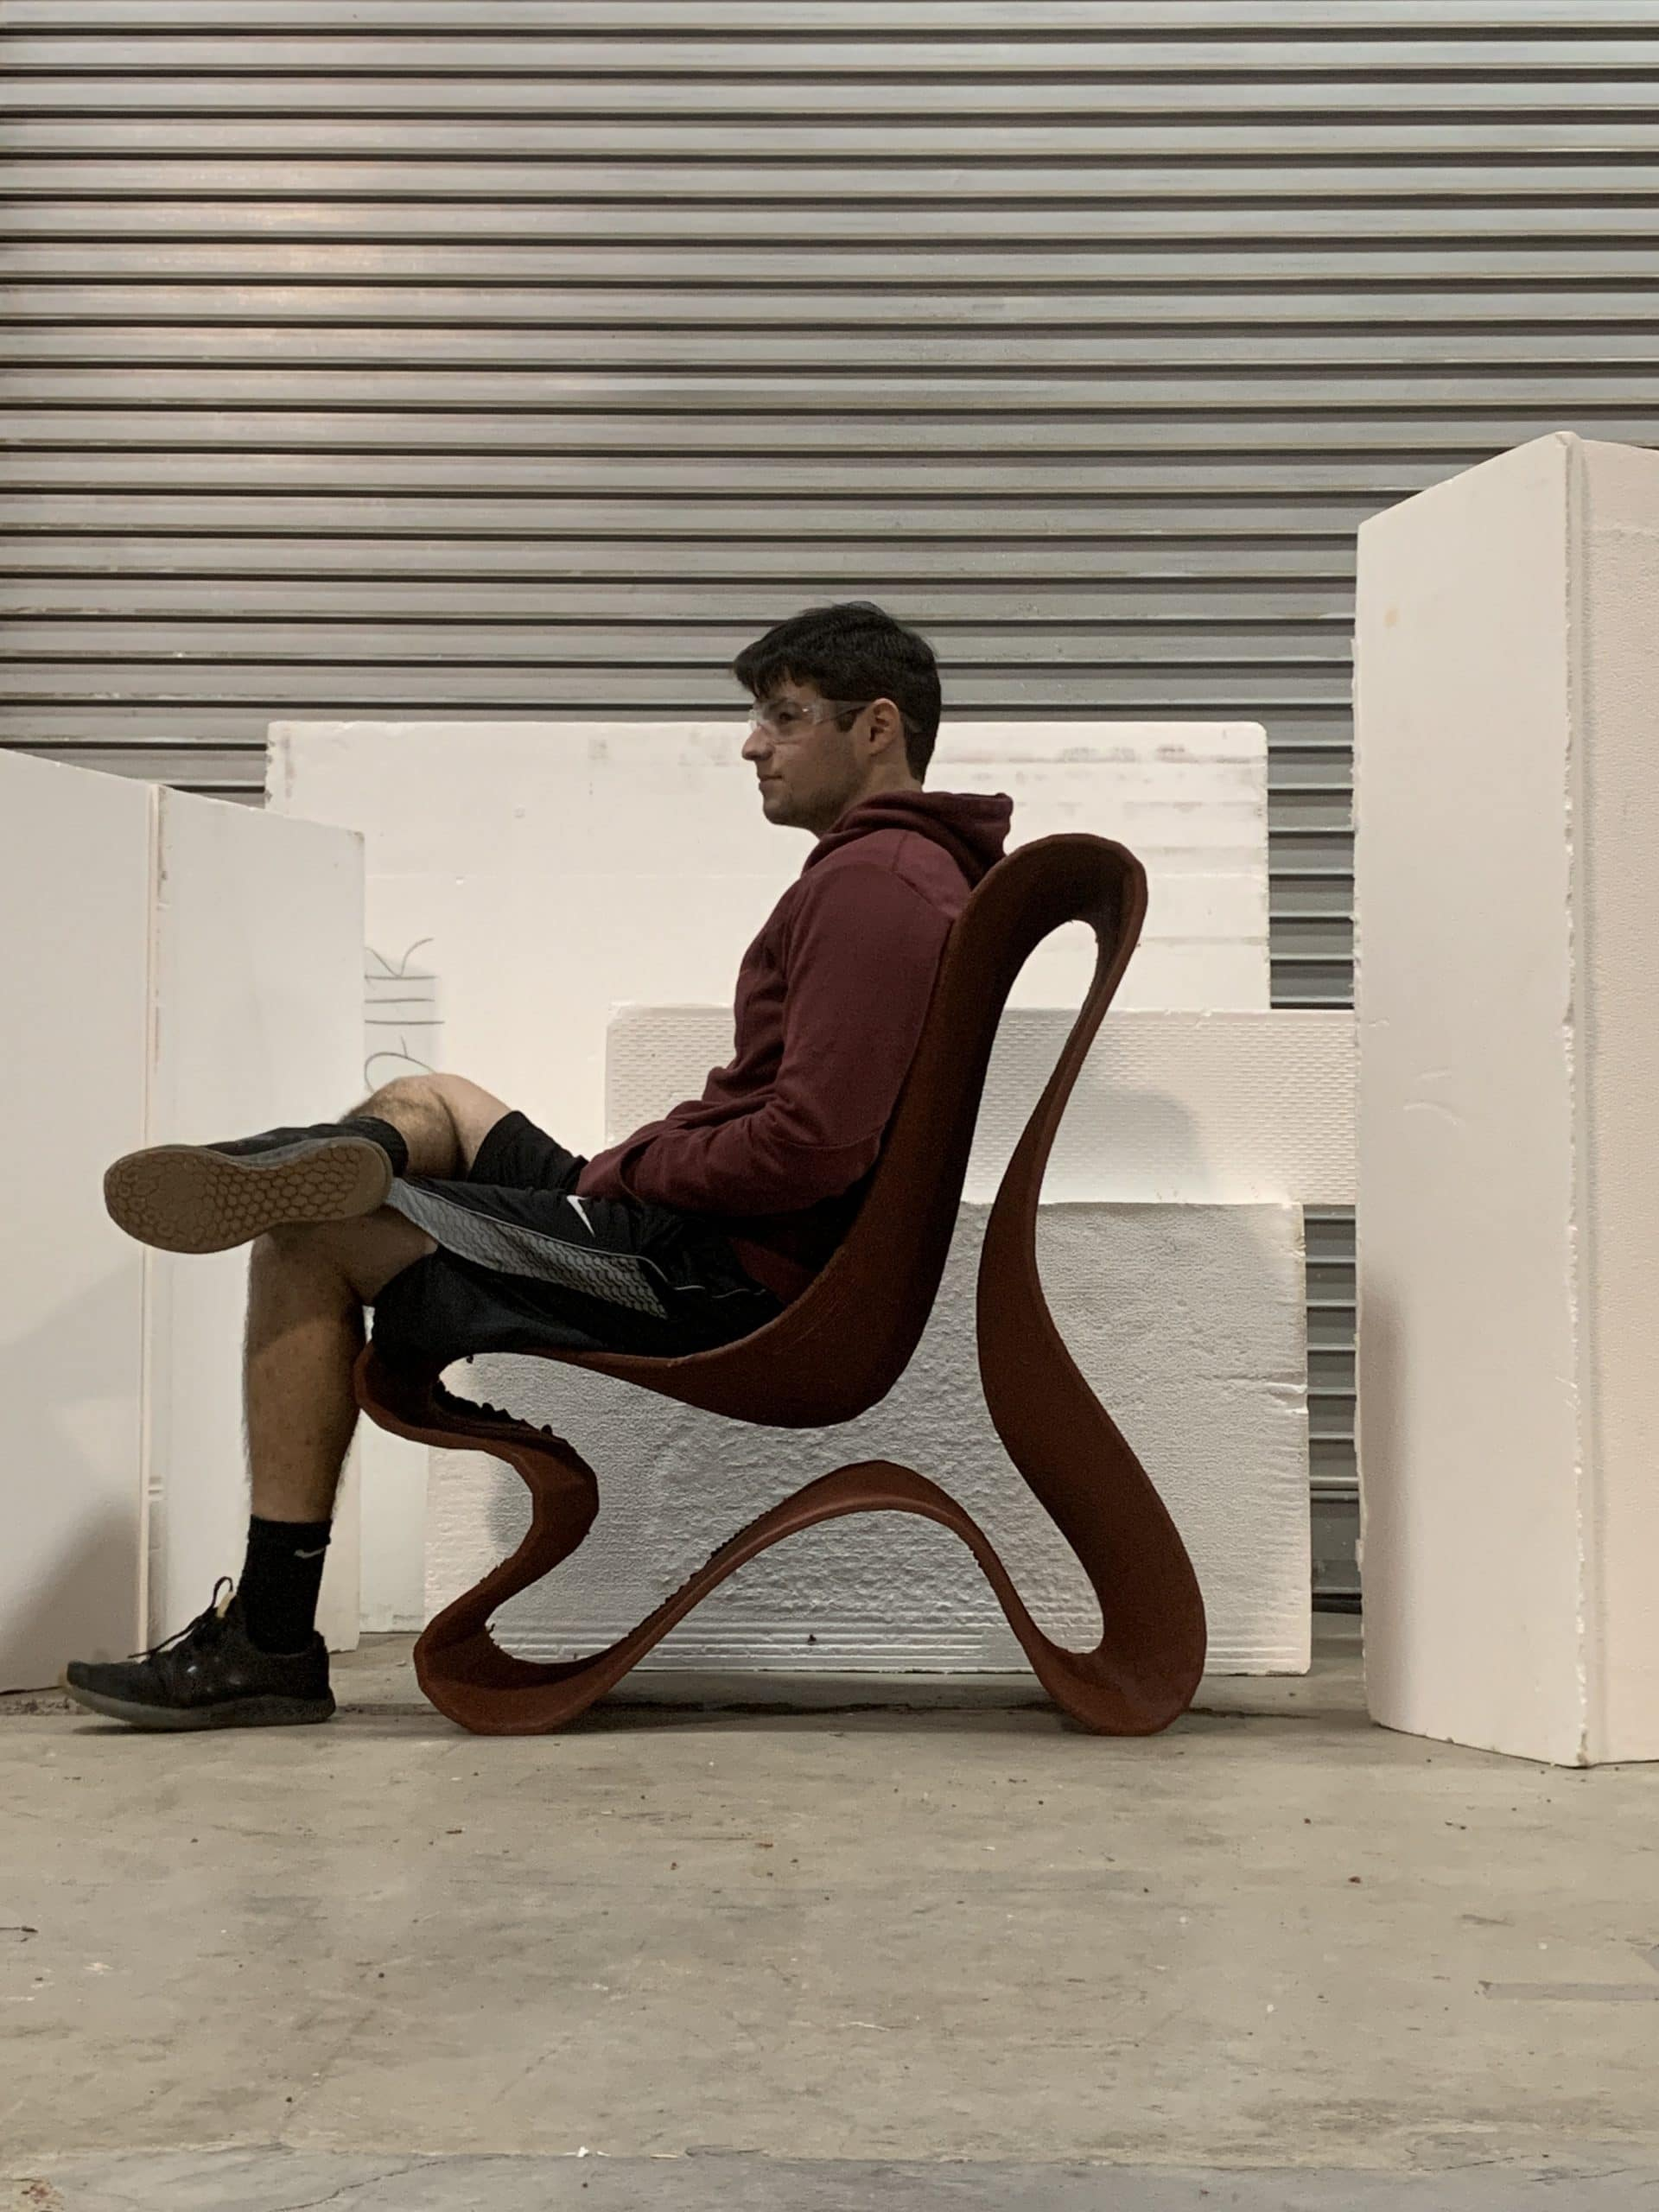 Man sitting on 3D printed outdoor chair designed in Gravity Sketch